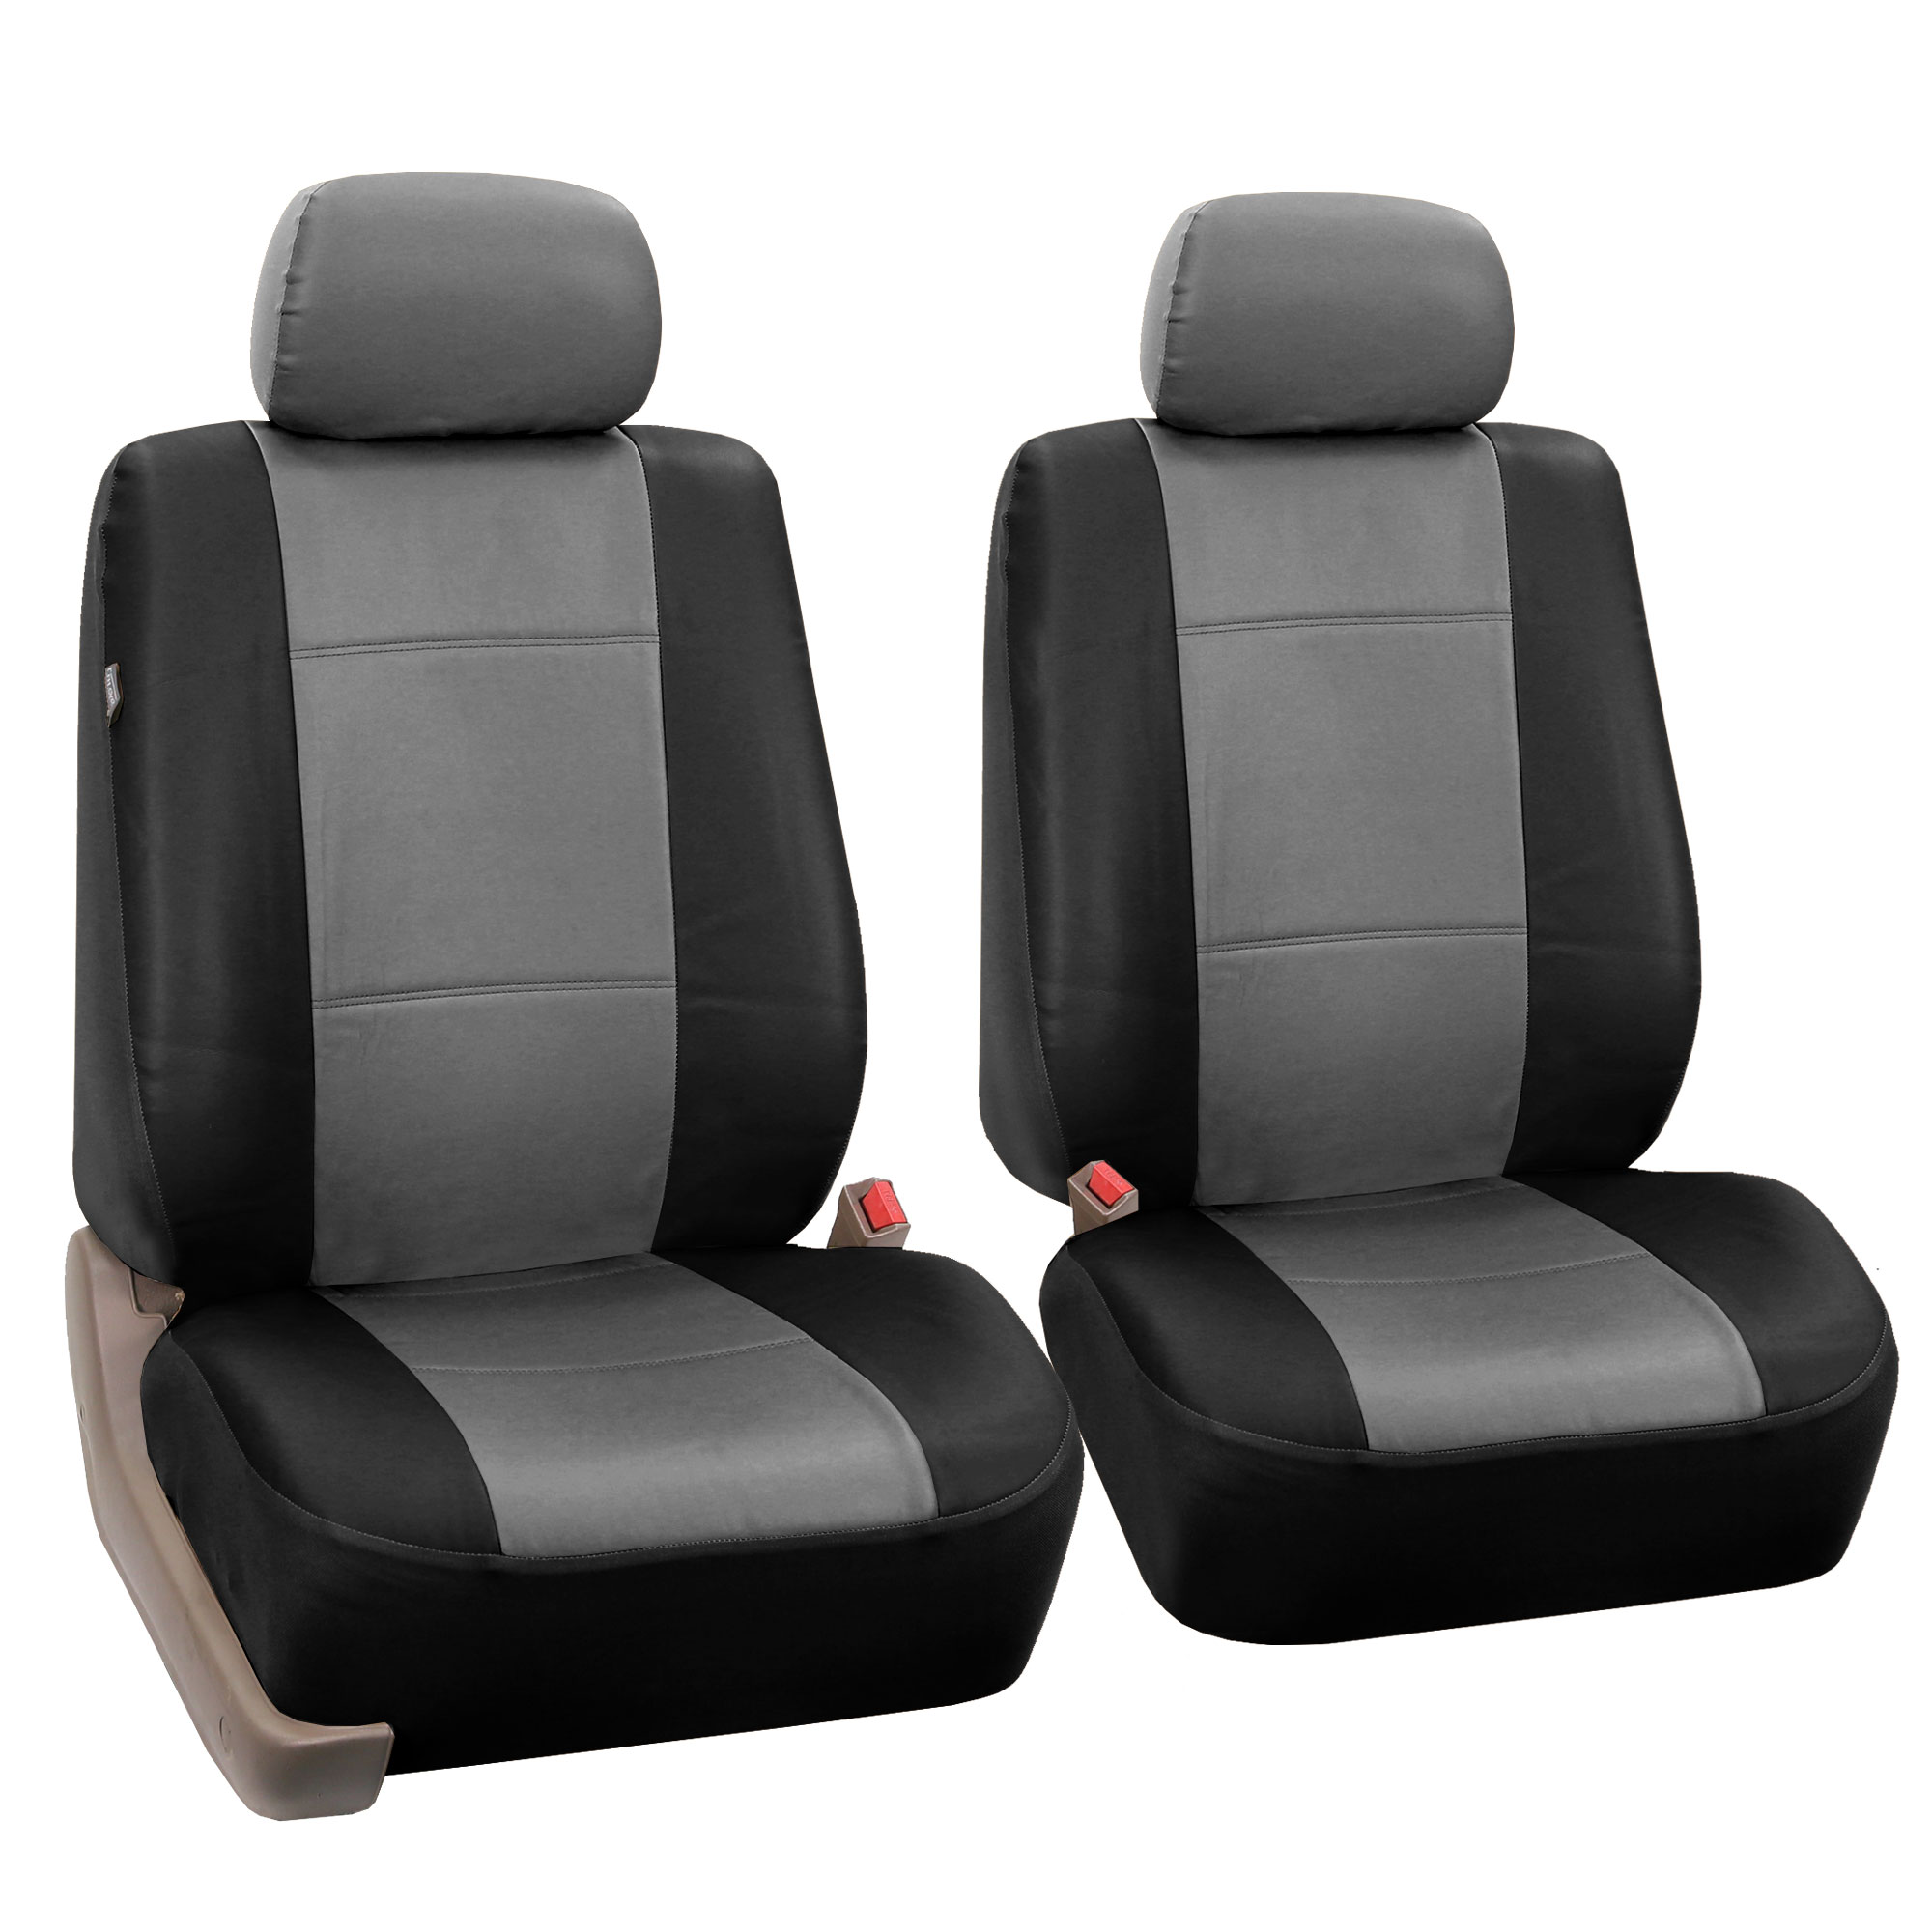 pair bucket pu leather seat covers for detachable headrest airbag compatible ebay. Black Bedroom Furniture Sets. Home Design Ideas